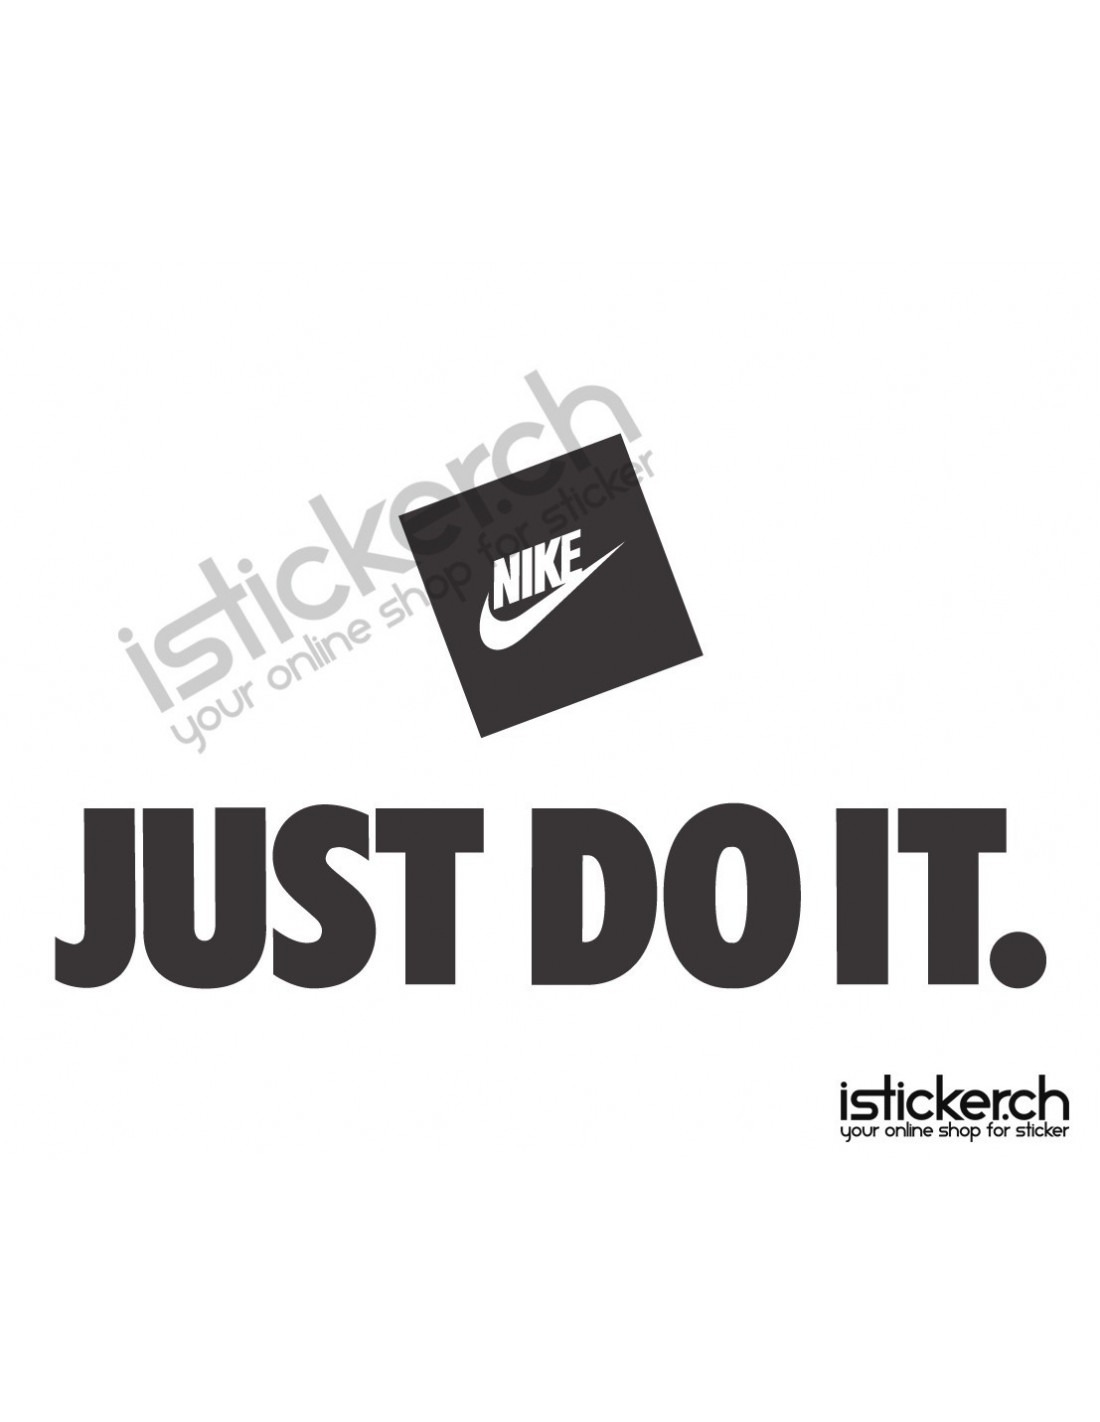 Nike Just Do It Logo Istickerch